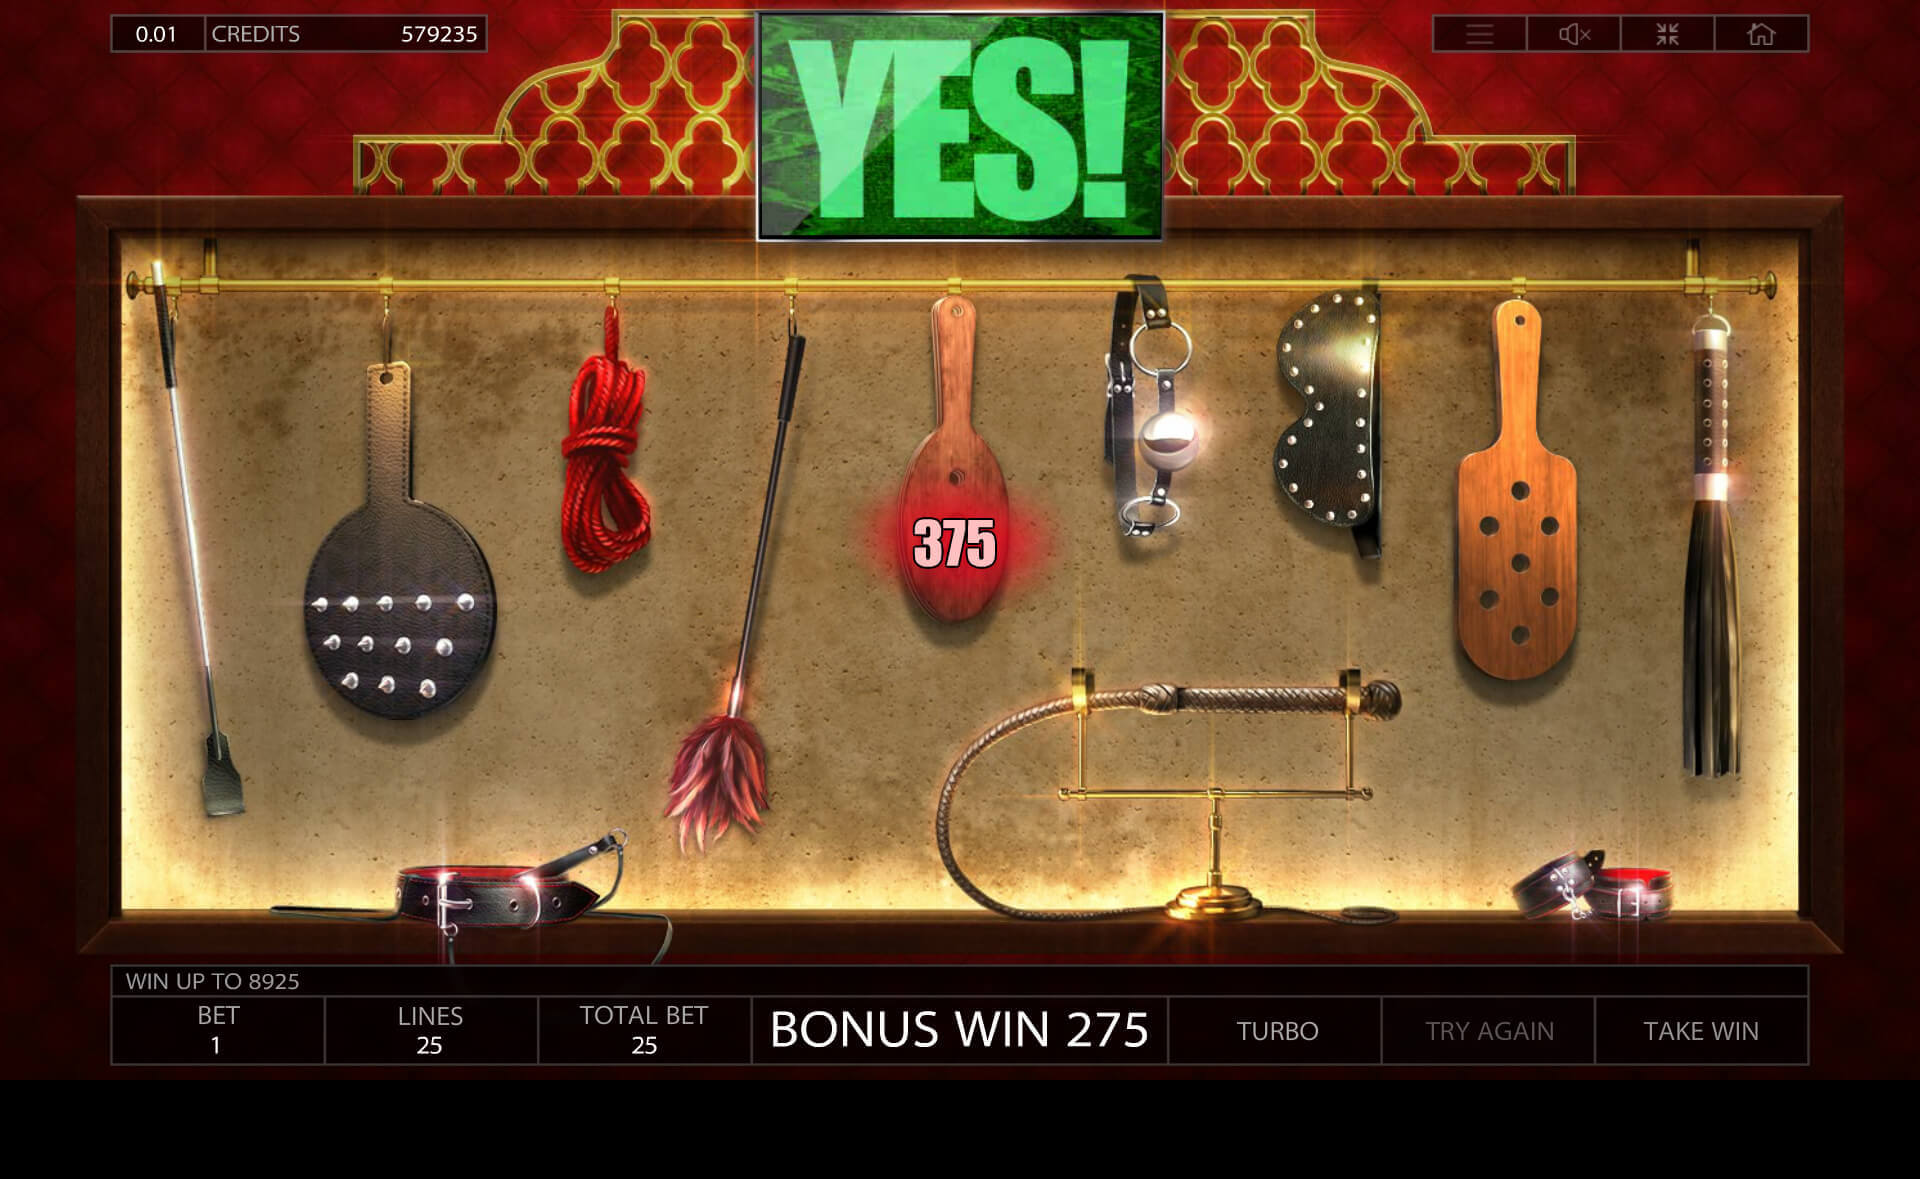 Slot Machines Algorithm and System in Online Casinos